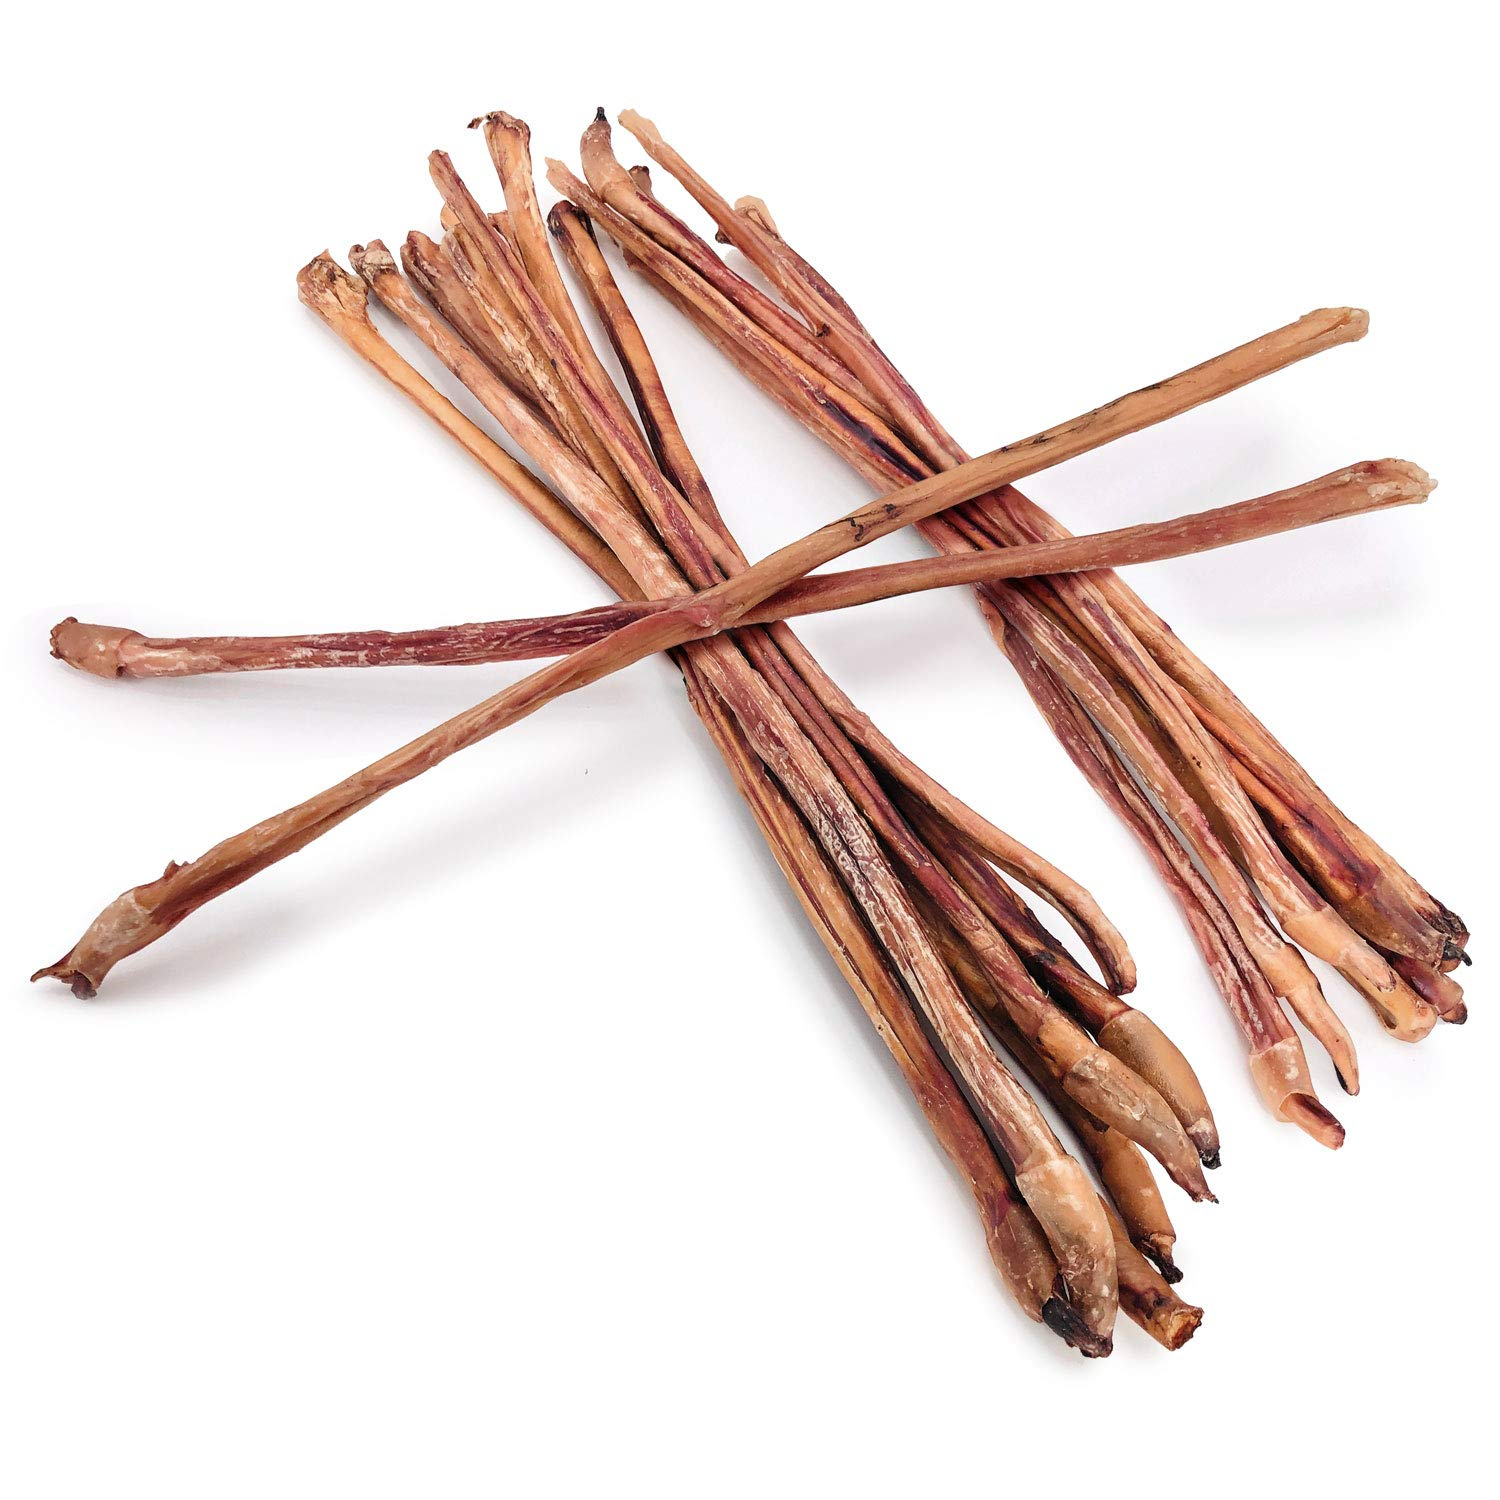 ValueBull Bully Sticks Dog Chews, 30-36 Inch Thick, All Natural, 20 Count